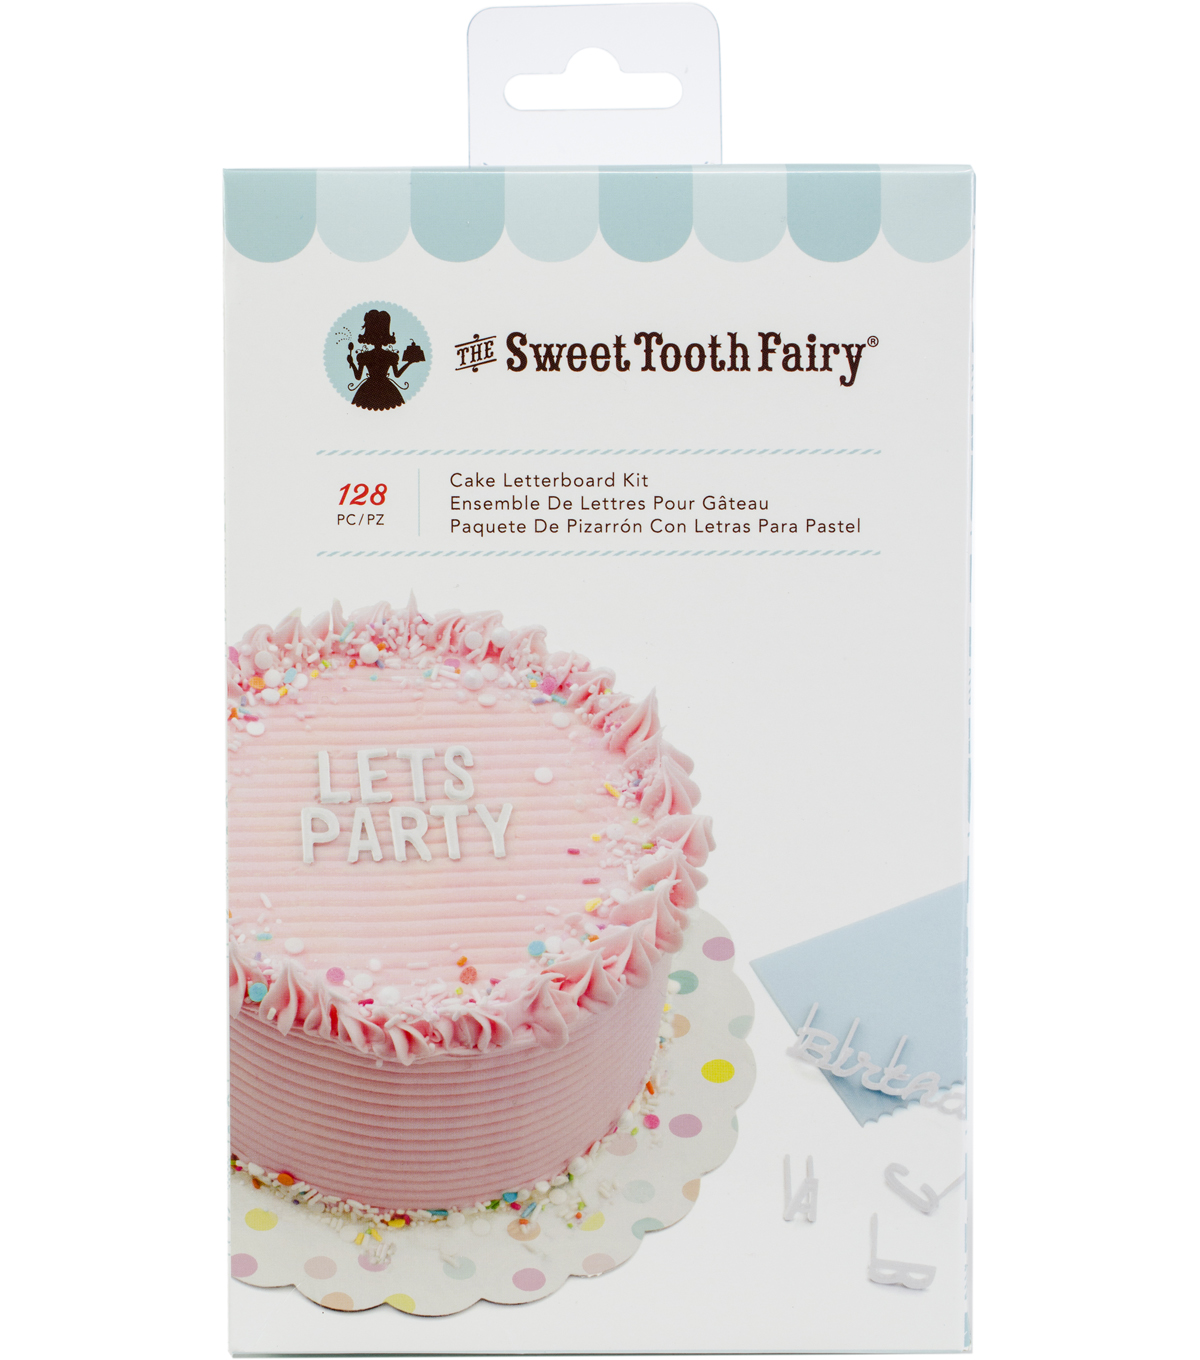 The Sweet Tooth Fairy 128 pk Cake Letter Board Kit-White Alphabet